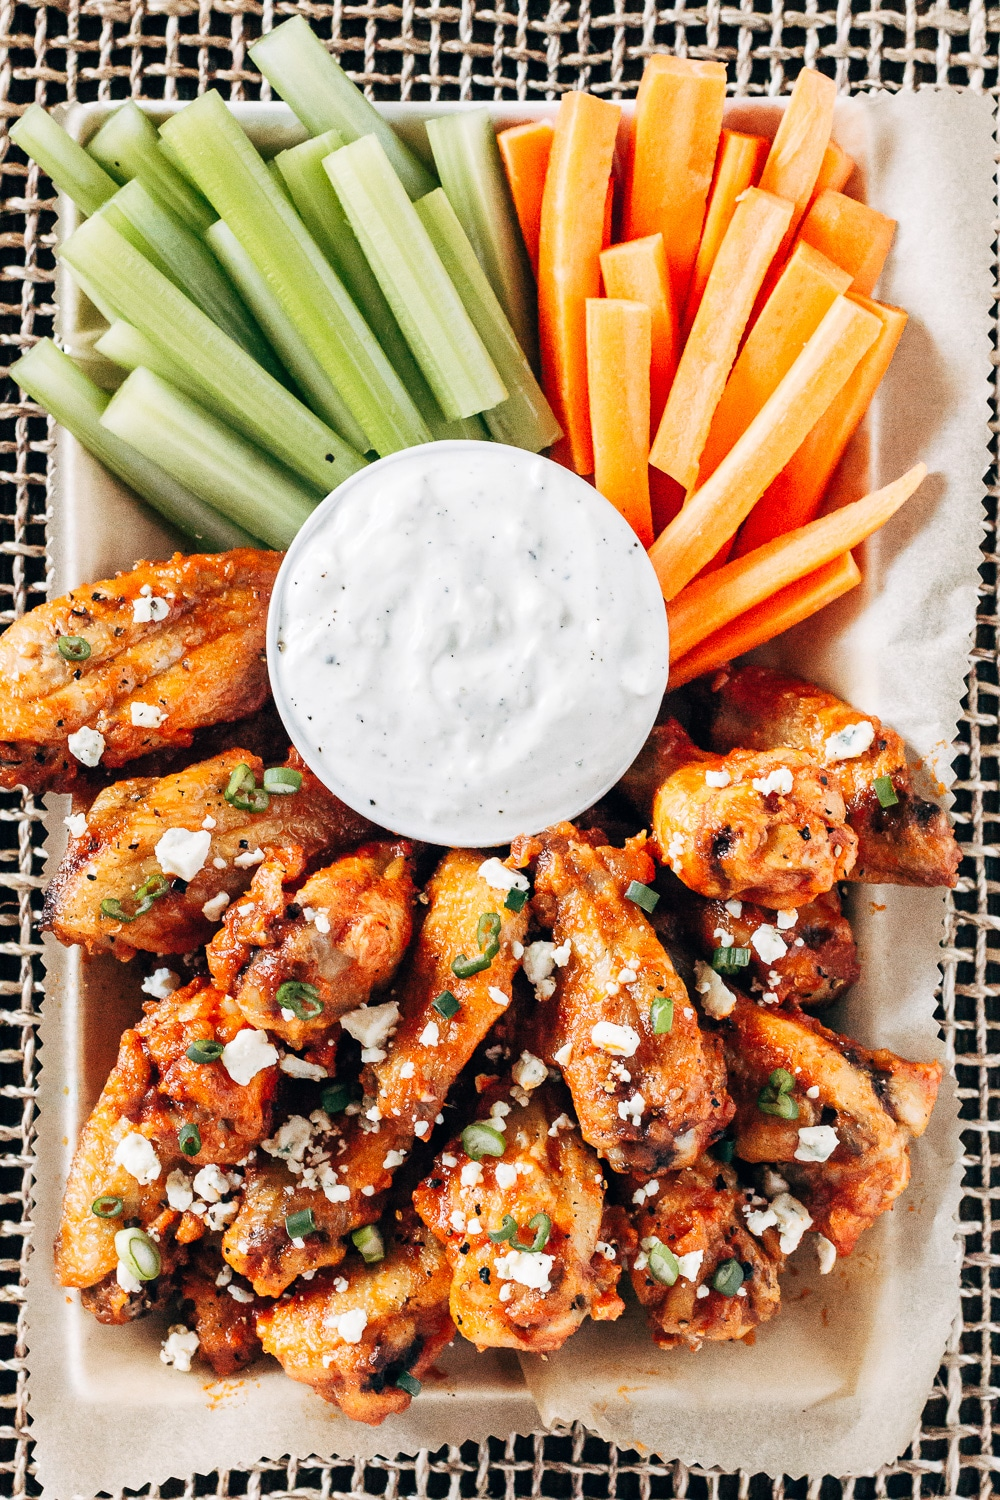 Healthyish Savory Recipes for the Game Day: Oven-Baked Chicken wings with hot wing sauce is served along with carrot sticks, celery, and blue ranch sauce